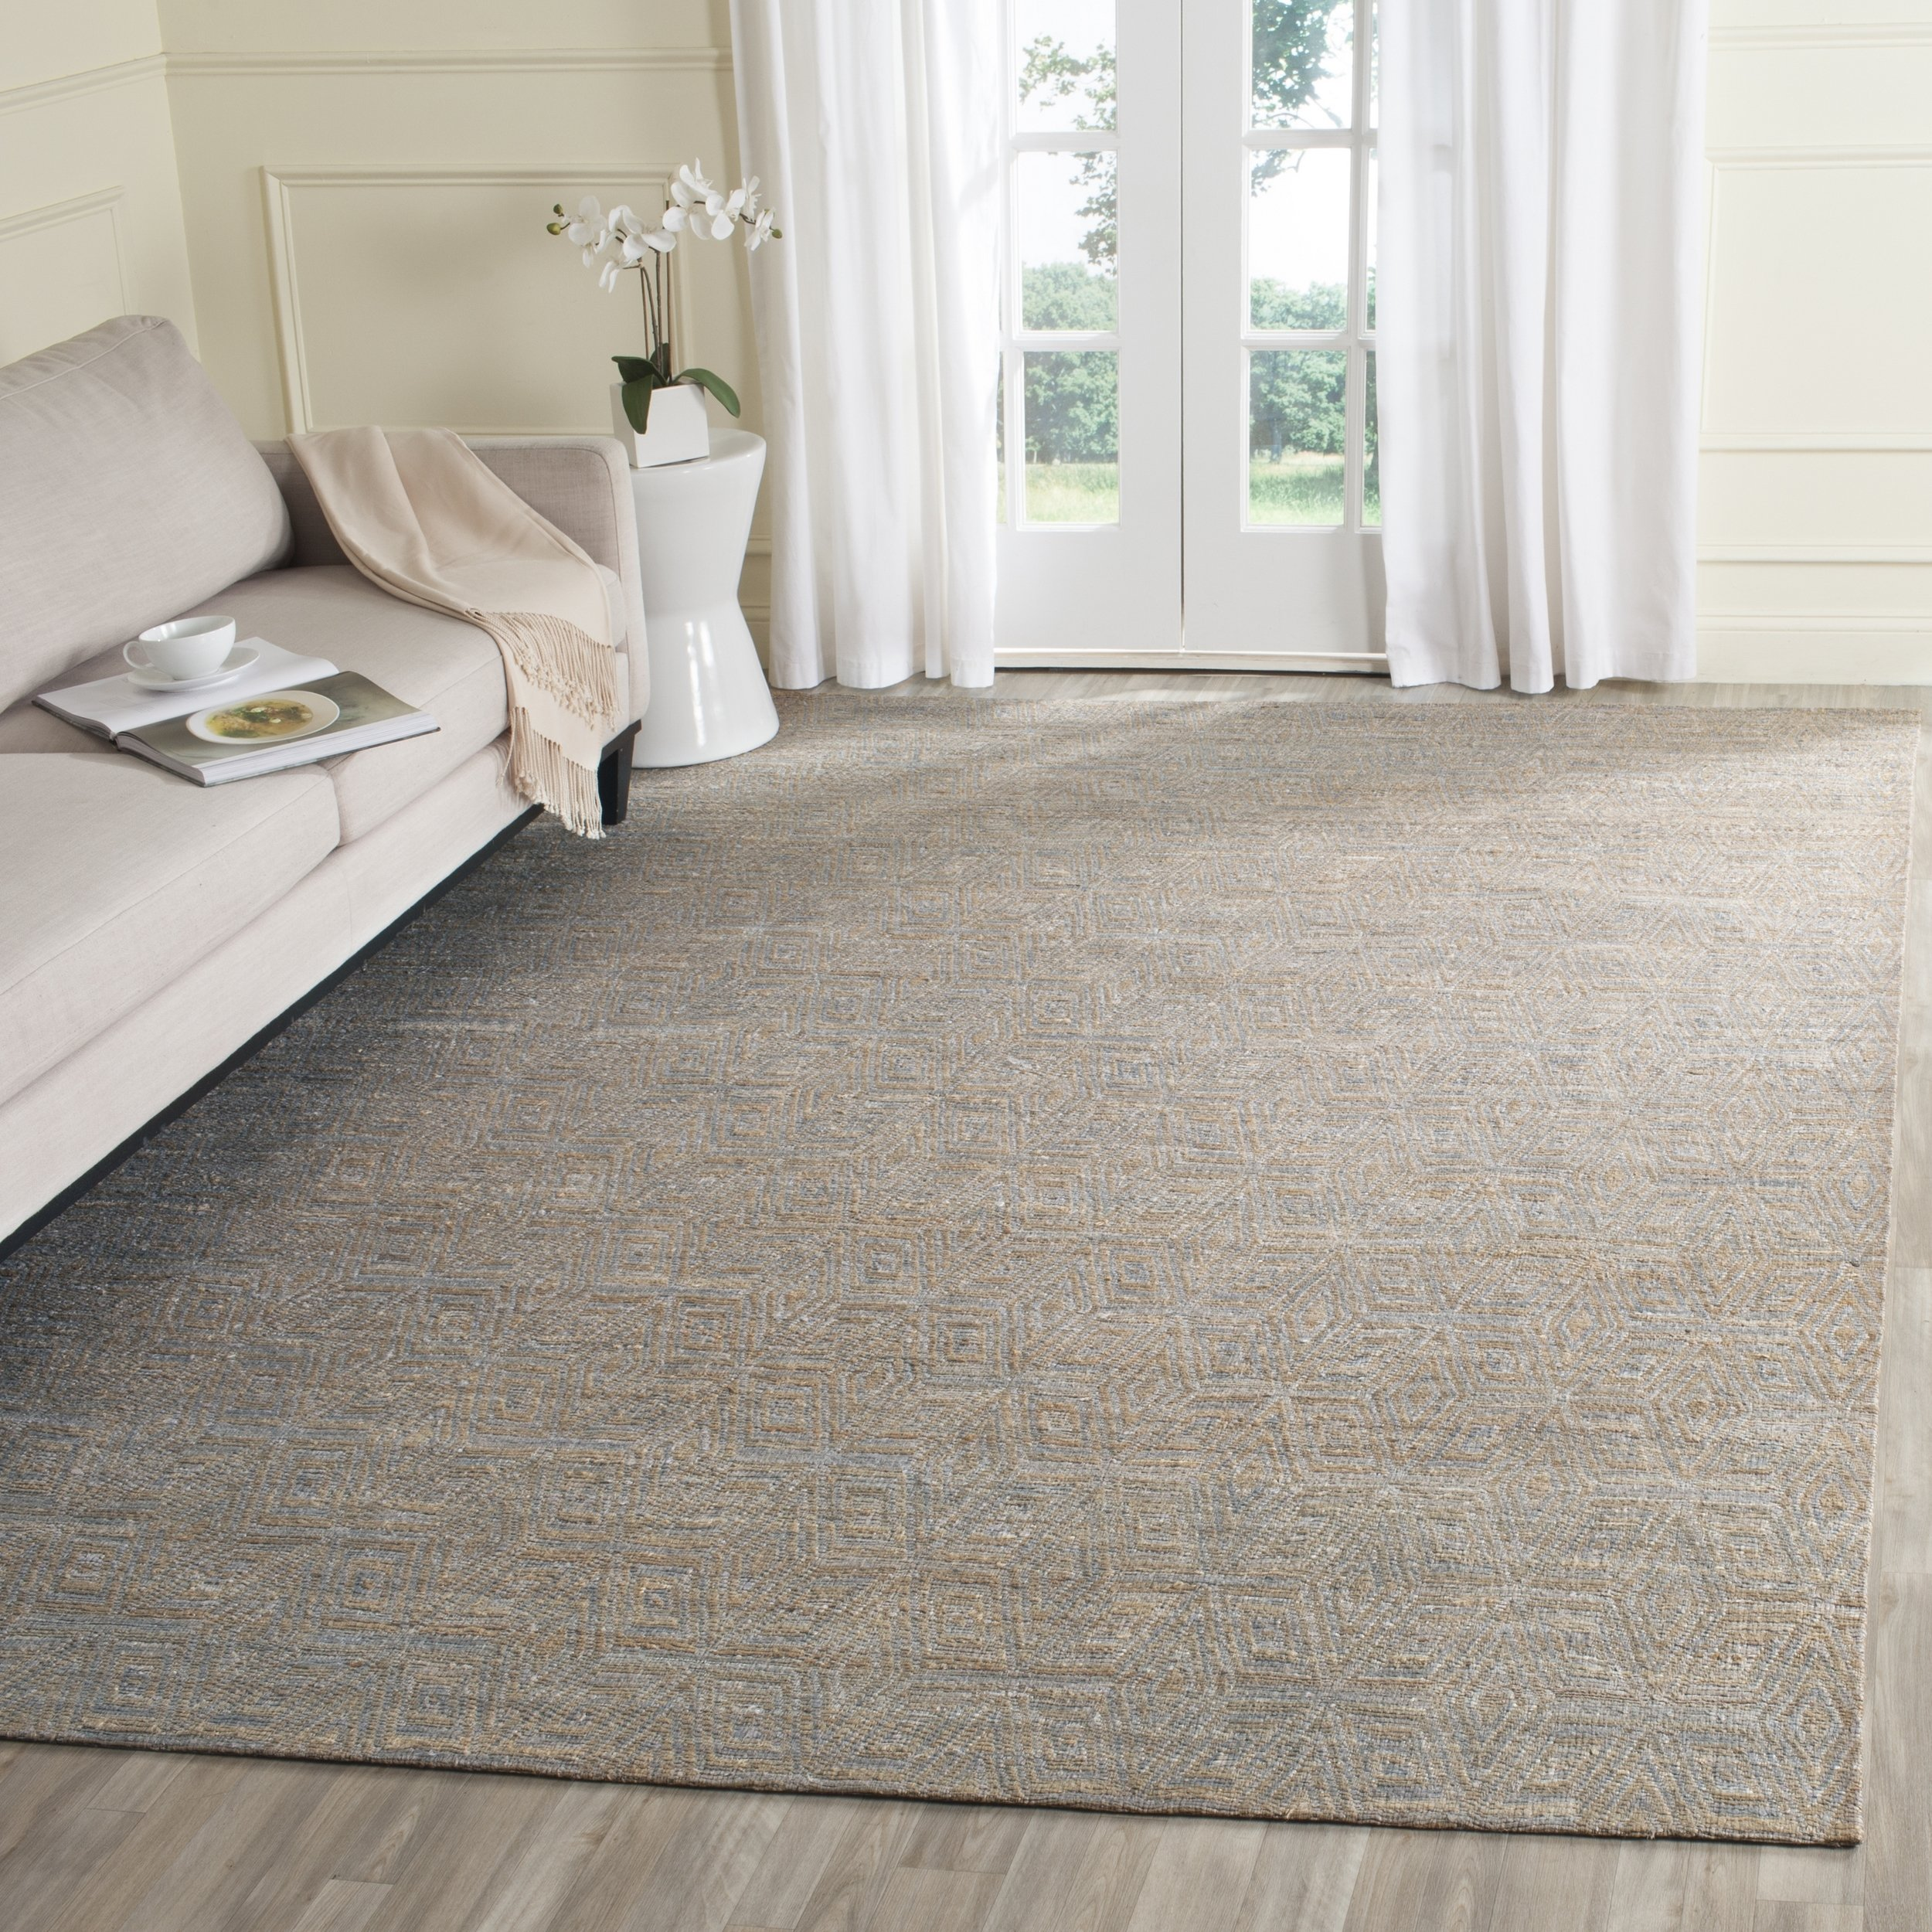 Safavieh Cape Cod Collection CAP412A Hand Woven Geometric Grey and Sand Jute and Cotton Area Rug (4' x 6')